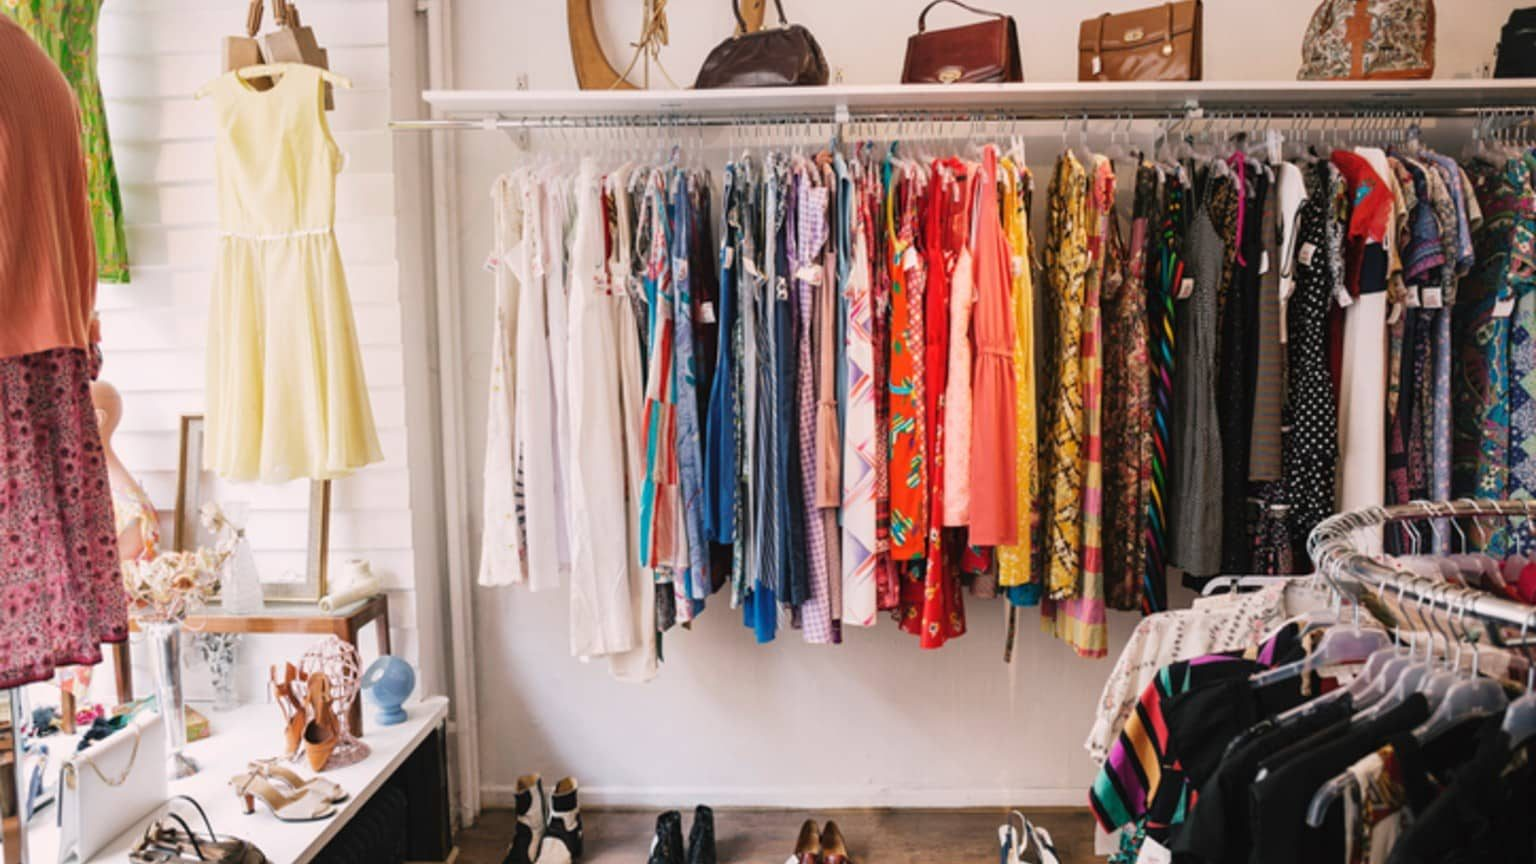 dresses hanging, purse and shoes in a thrift shop